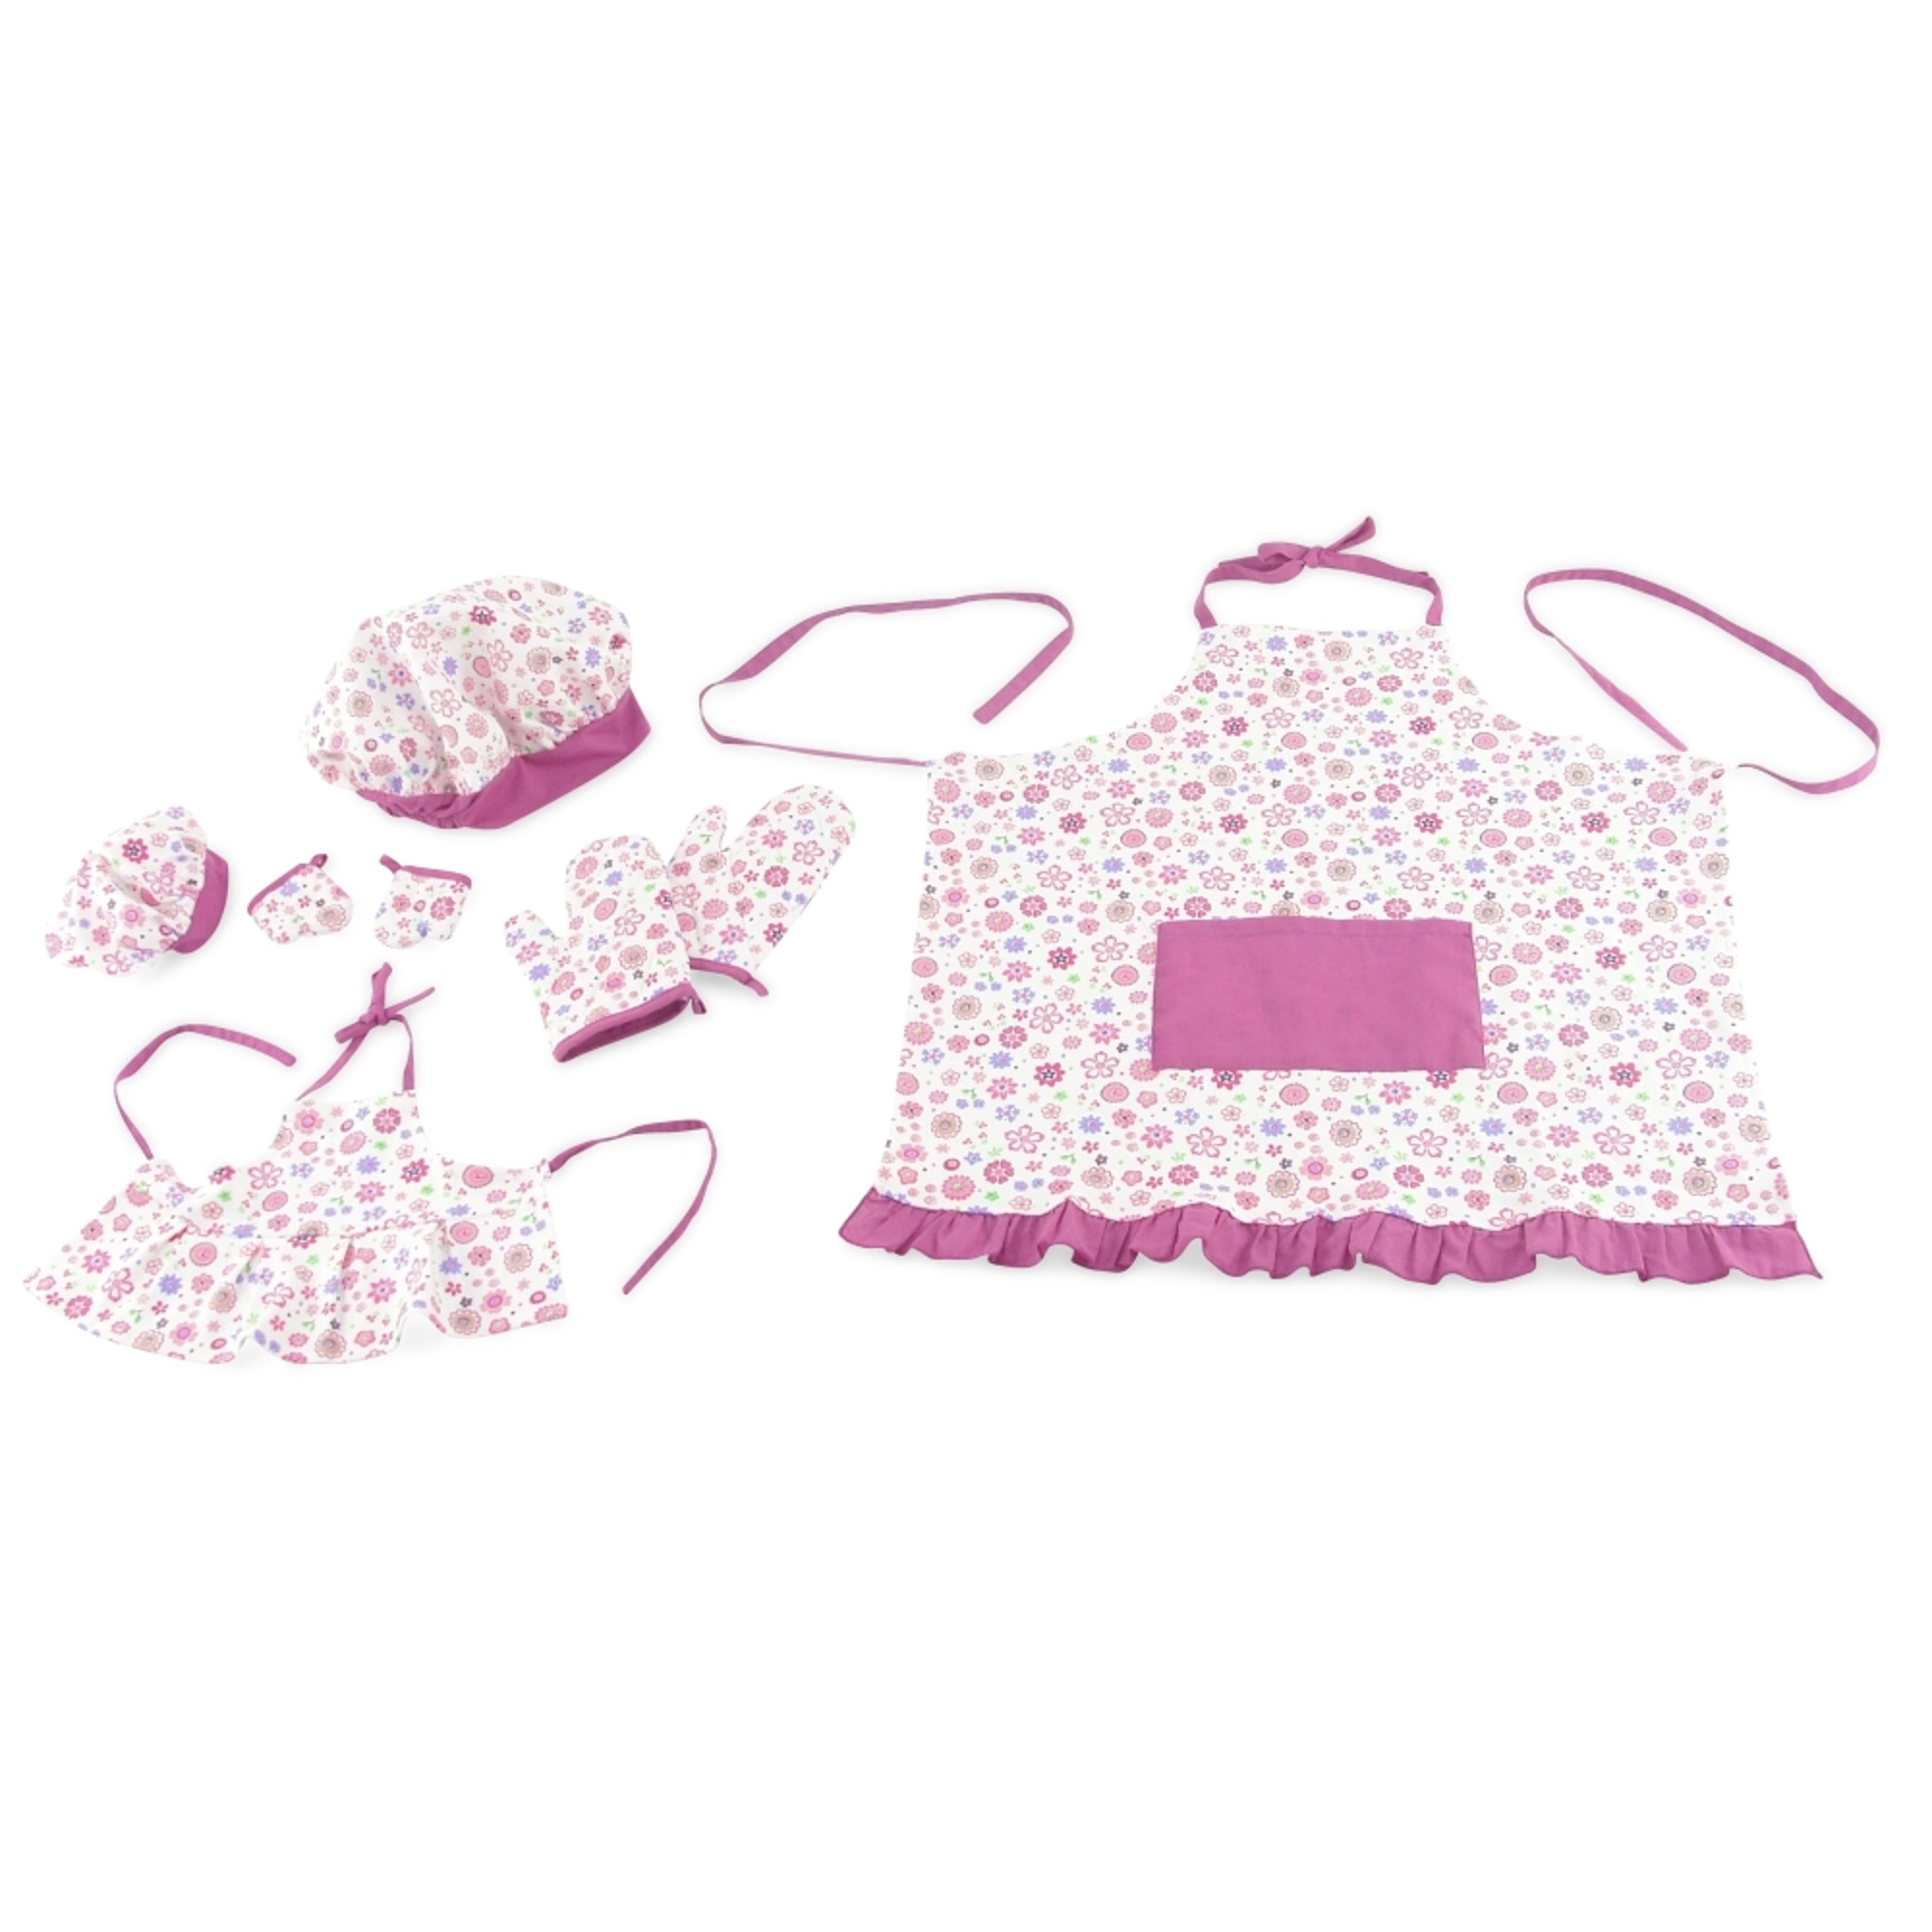 American Girl pink Mitt from Spa Party set NOWB